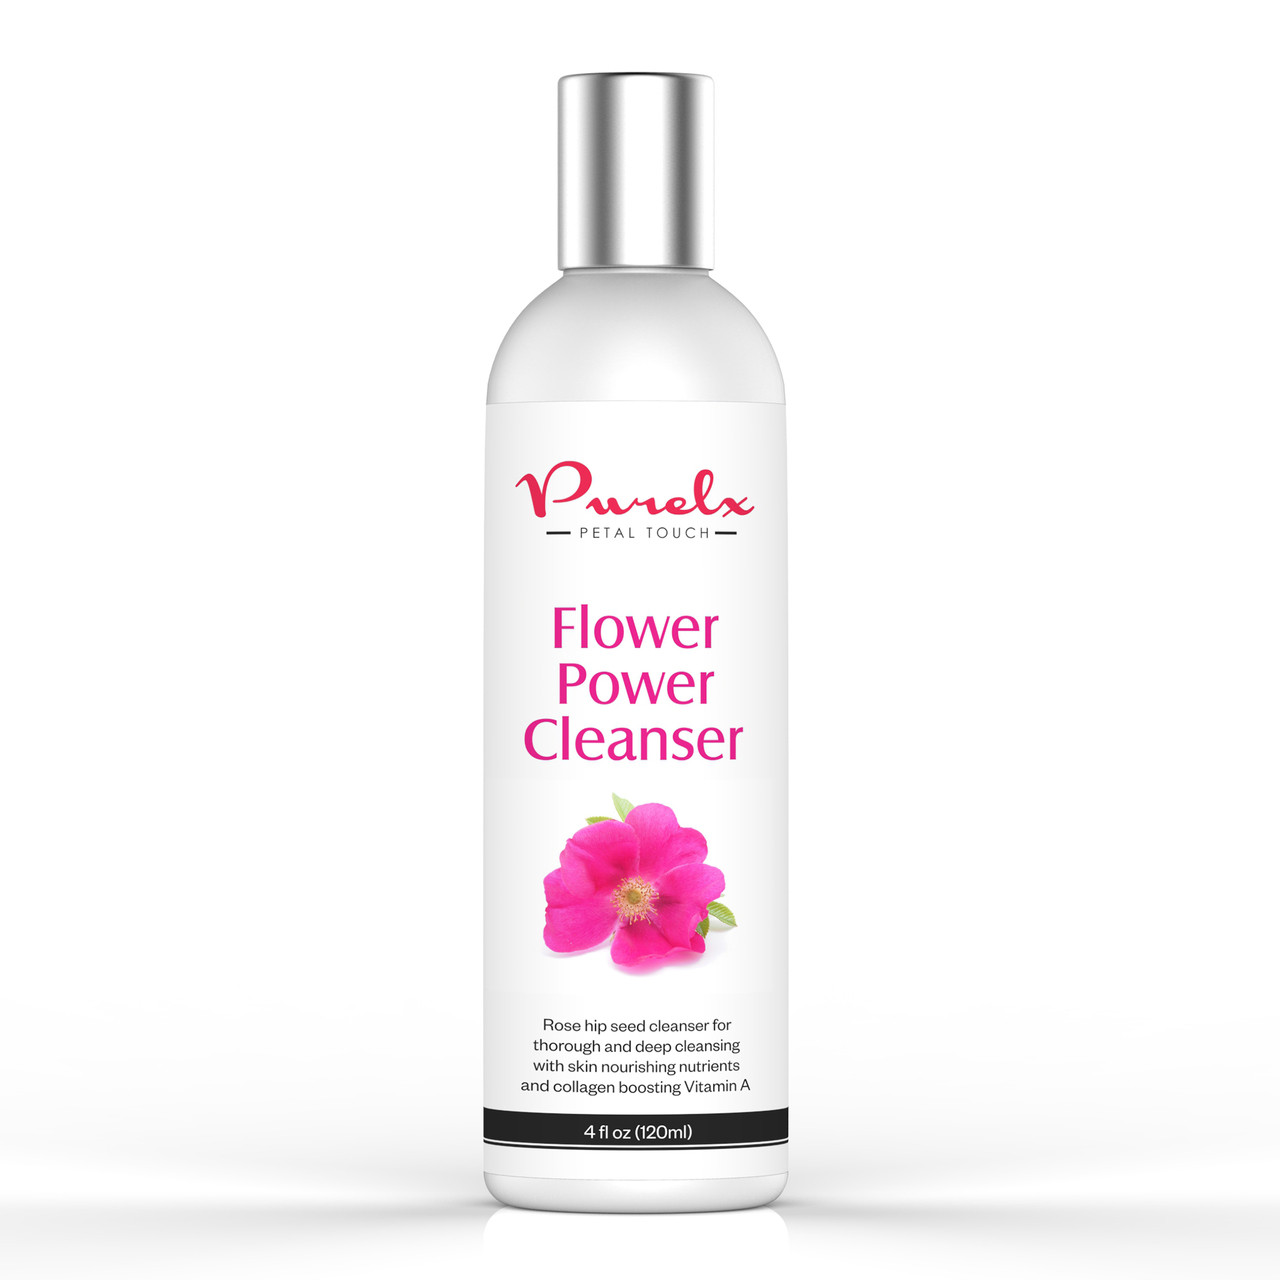 Flower Power Cleanser with Rose Hip Seed Oil to gently wash makeup and impurities without stripping skin of essential elements.